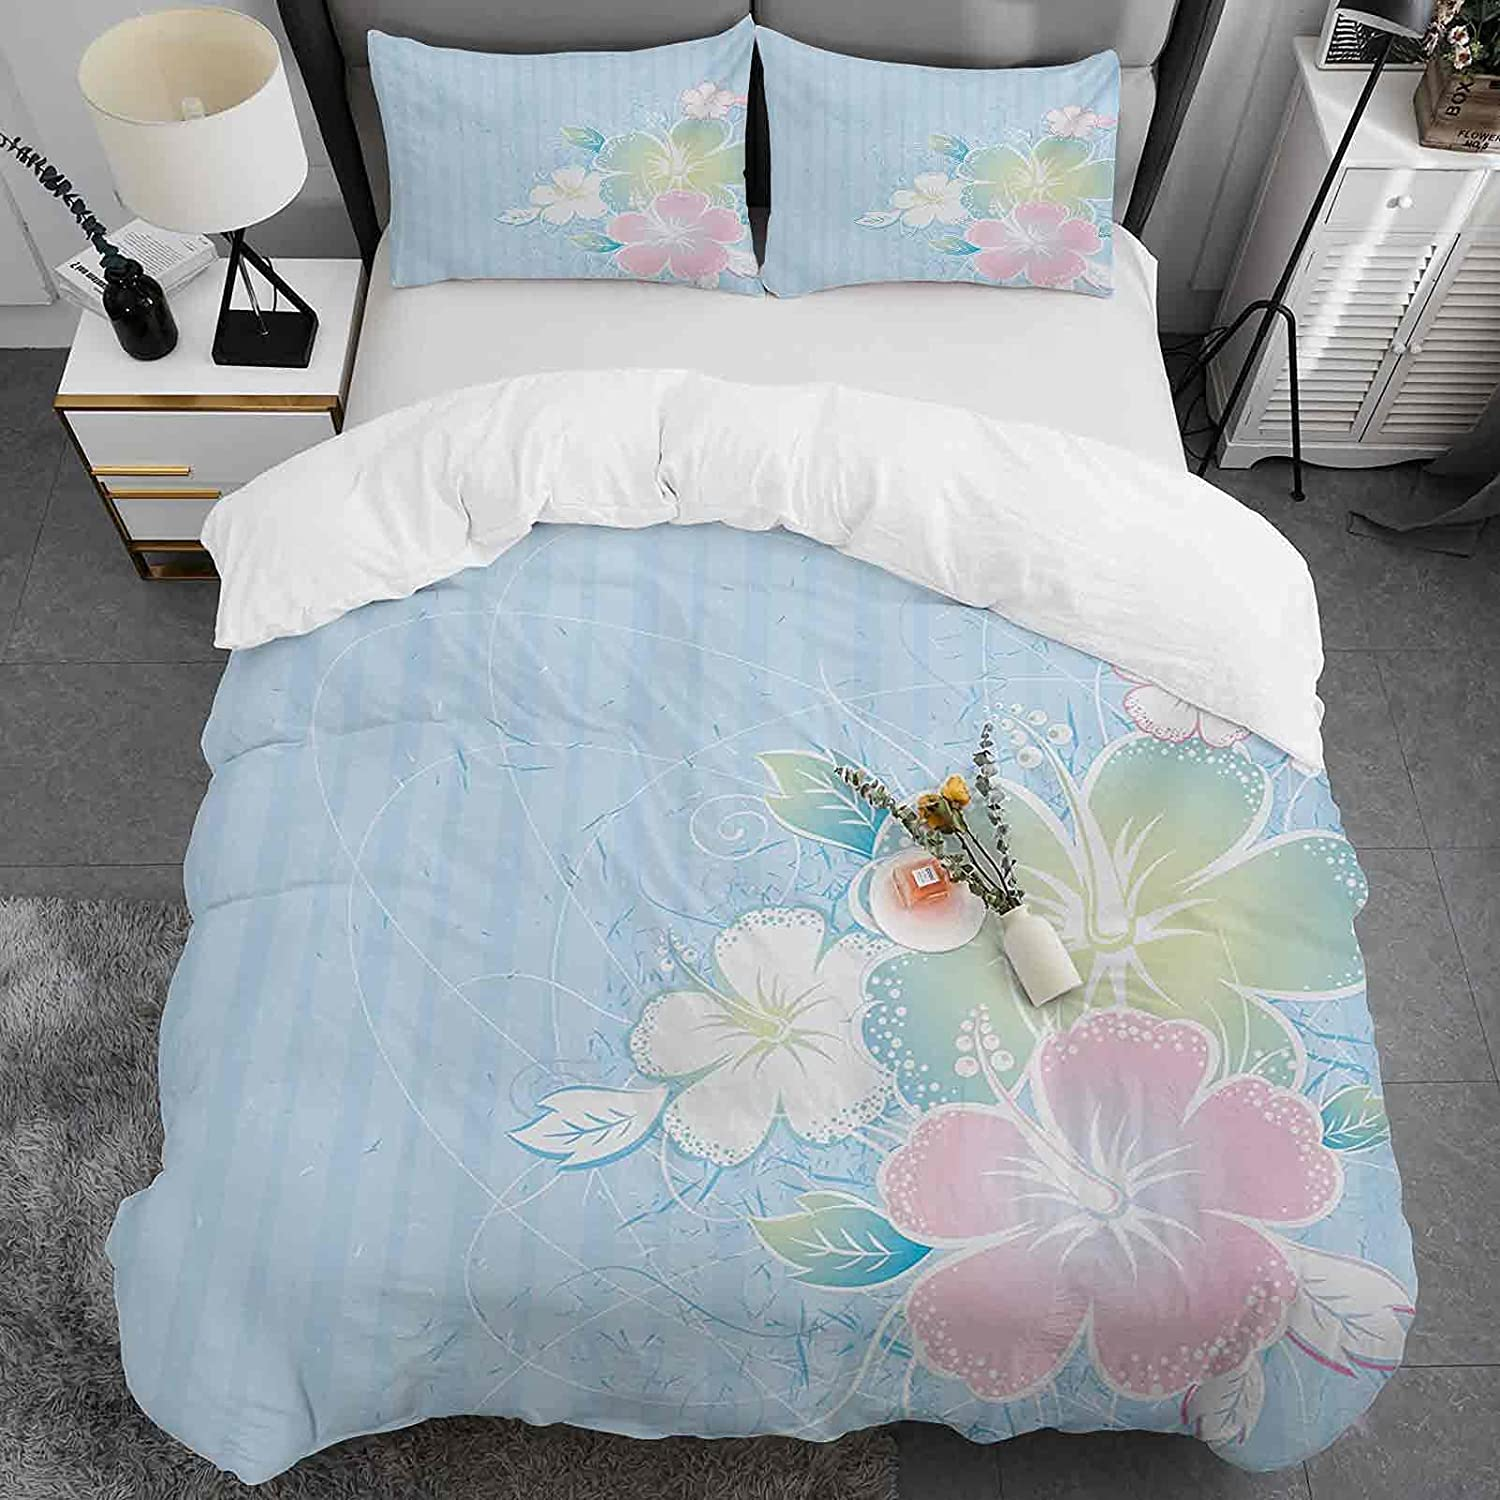 Ranking TOP19 Flower Duvet Cover Set Queen Size Flowers Gorgeous Hibiscus of Bouquet o